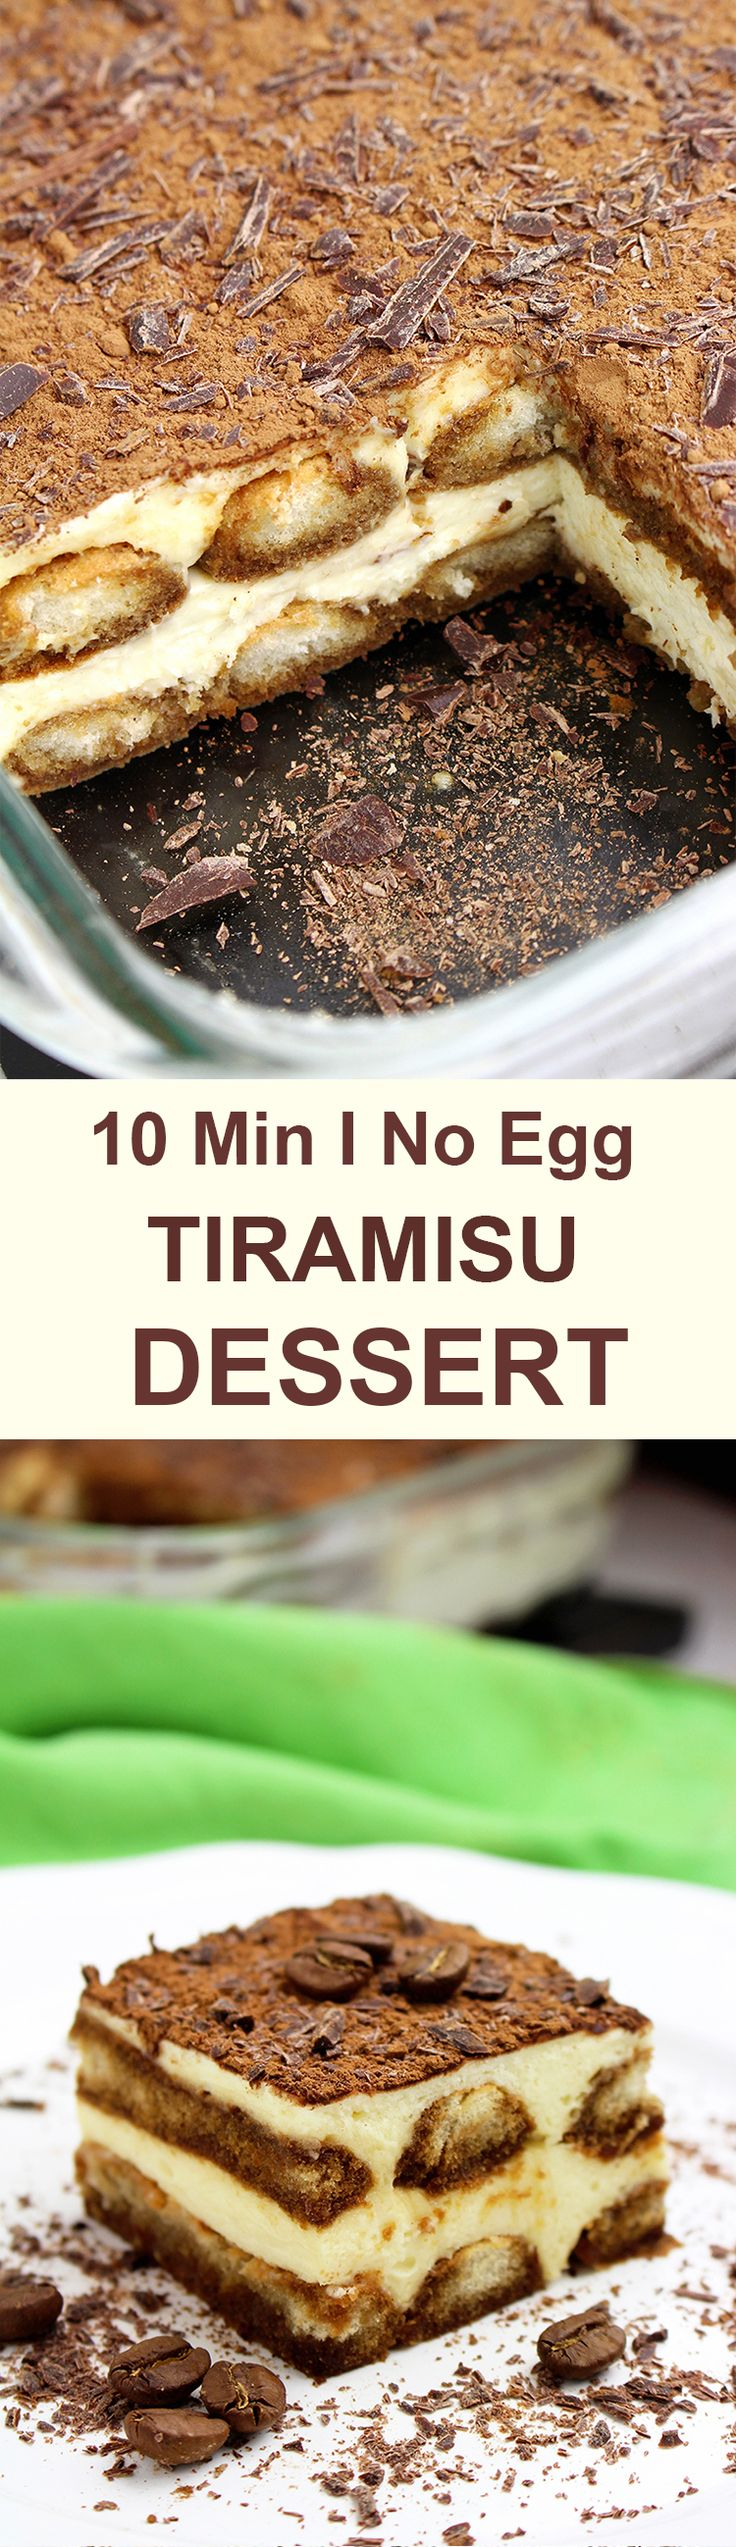 This traditional Italian dessert is well known all over the world. If you like simple, no bake and light dessert, you will love Easy Tiramisu Dessert Recipe